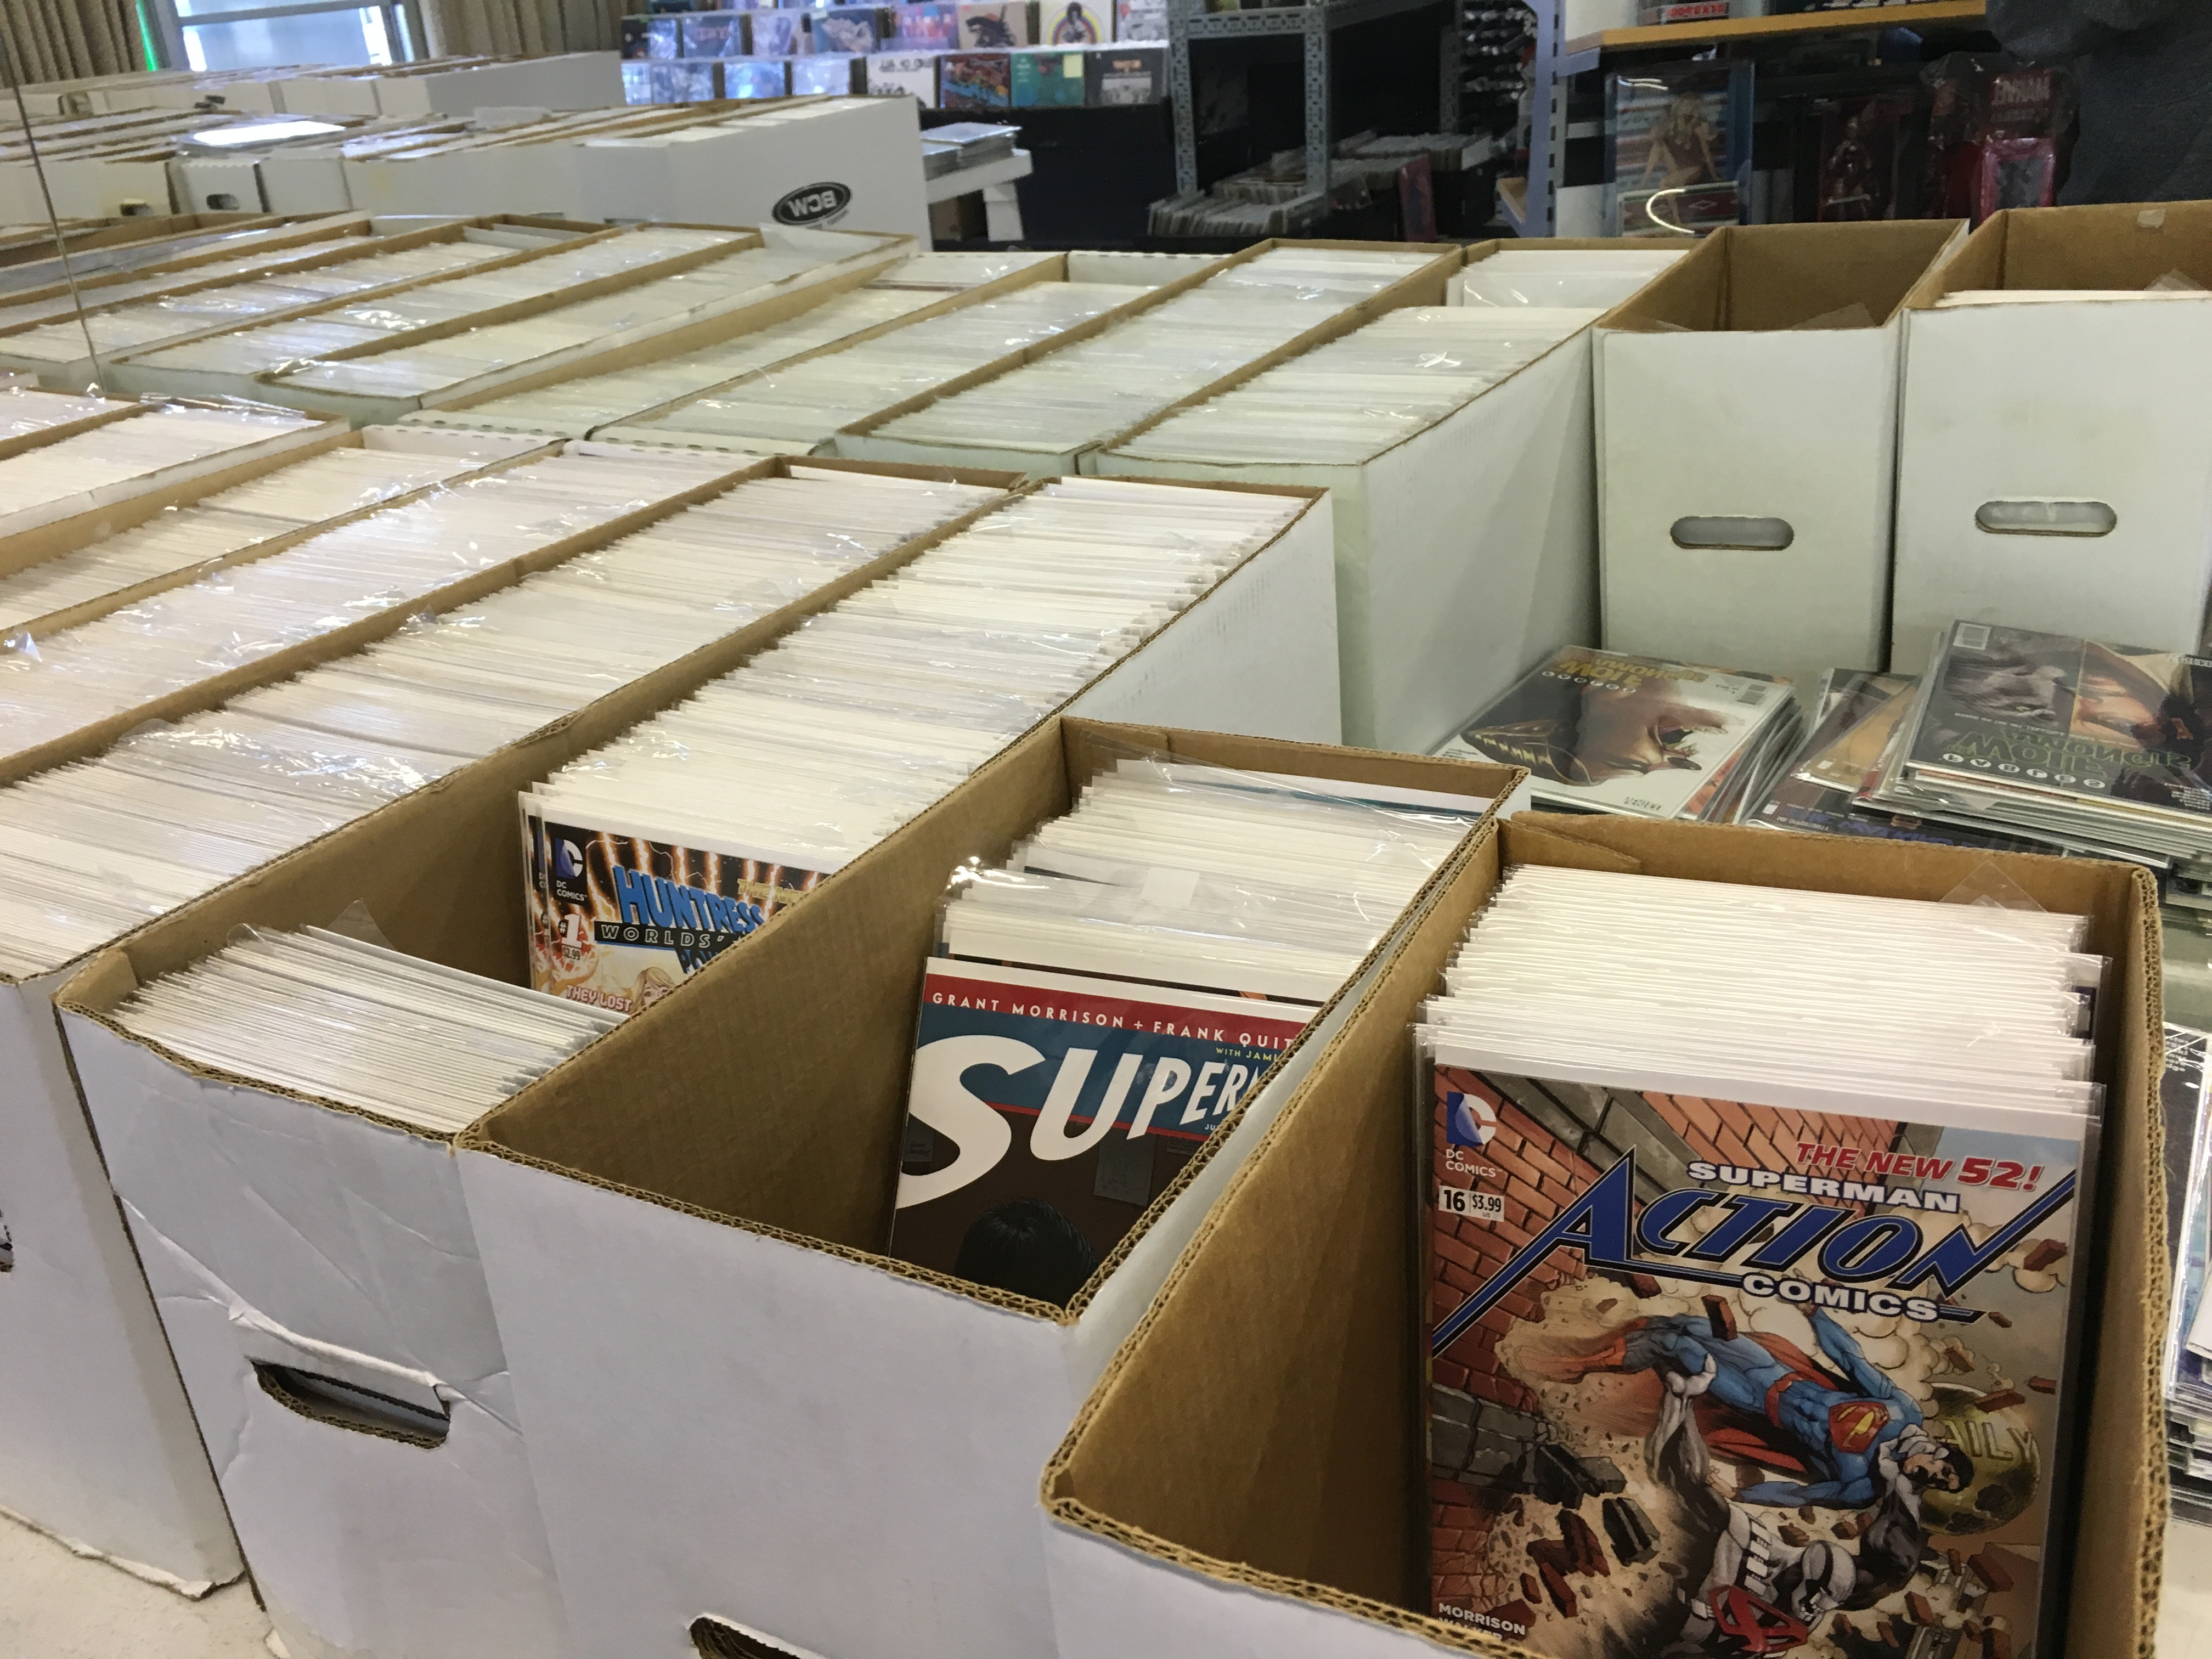 "<span  class=""uc_style_uc_tiles_grid_image_elementor_uc_items_attribute_title"" style=""color:#ffffff;"">Back Issues at Mammoth Comics</span>"